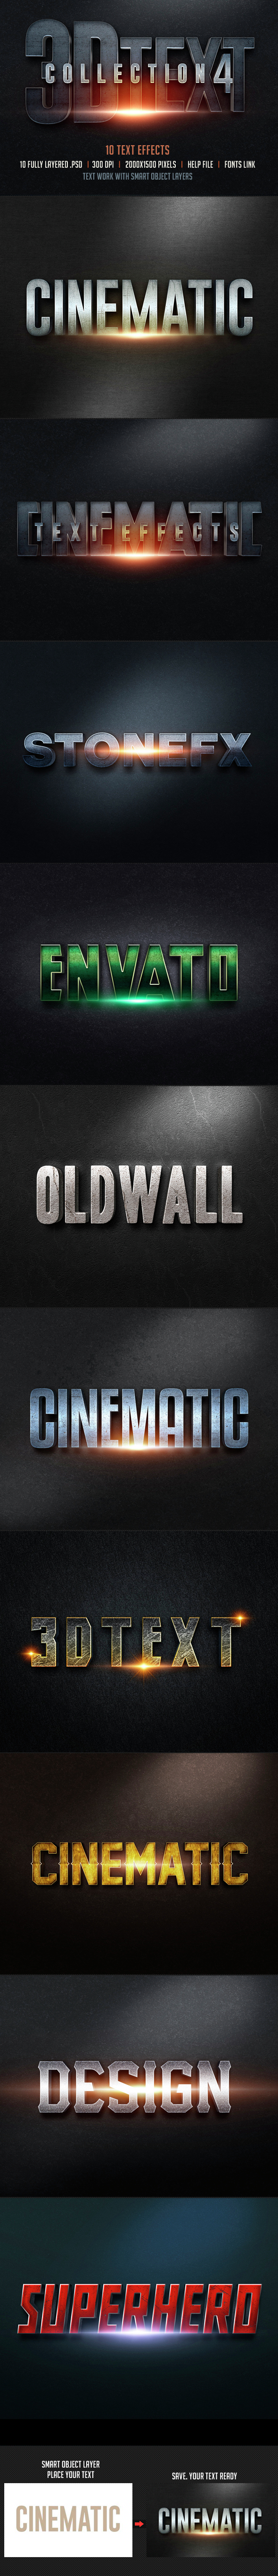 Realistic Text Effect Photoshop Actions from GraphicRiver